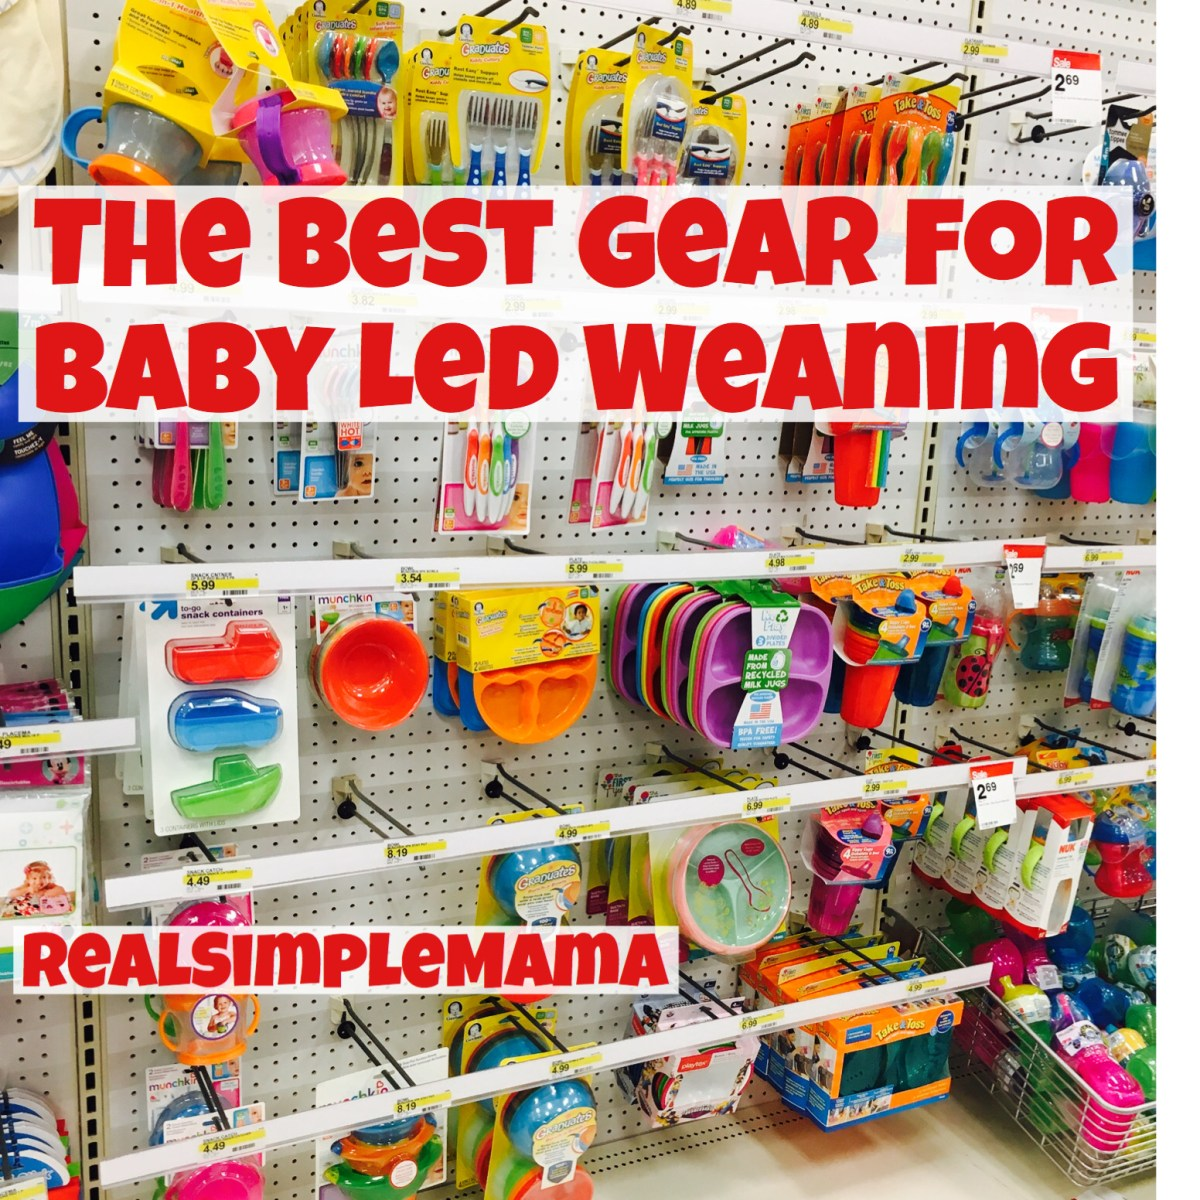 The Best Gear for Baby Led Weaning!